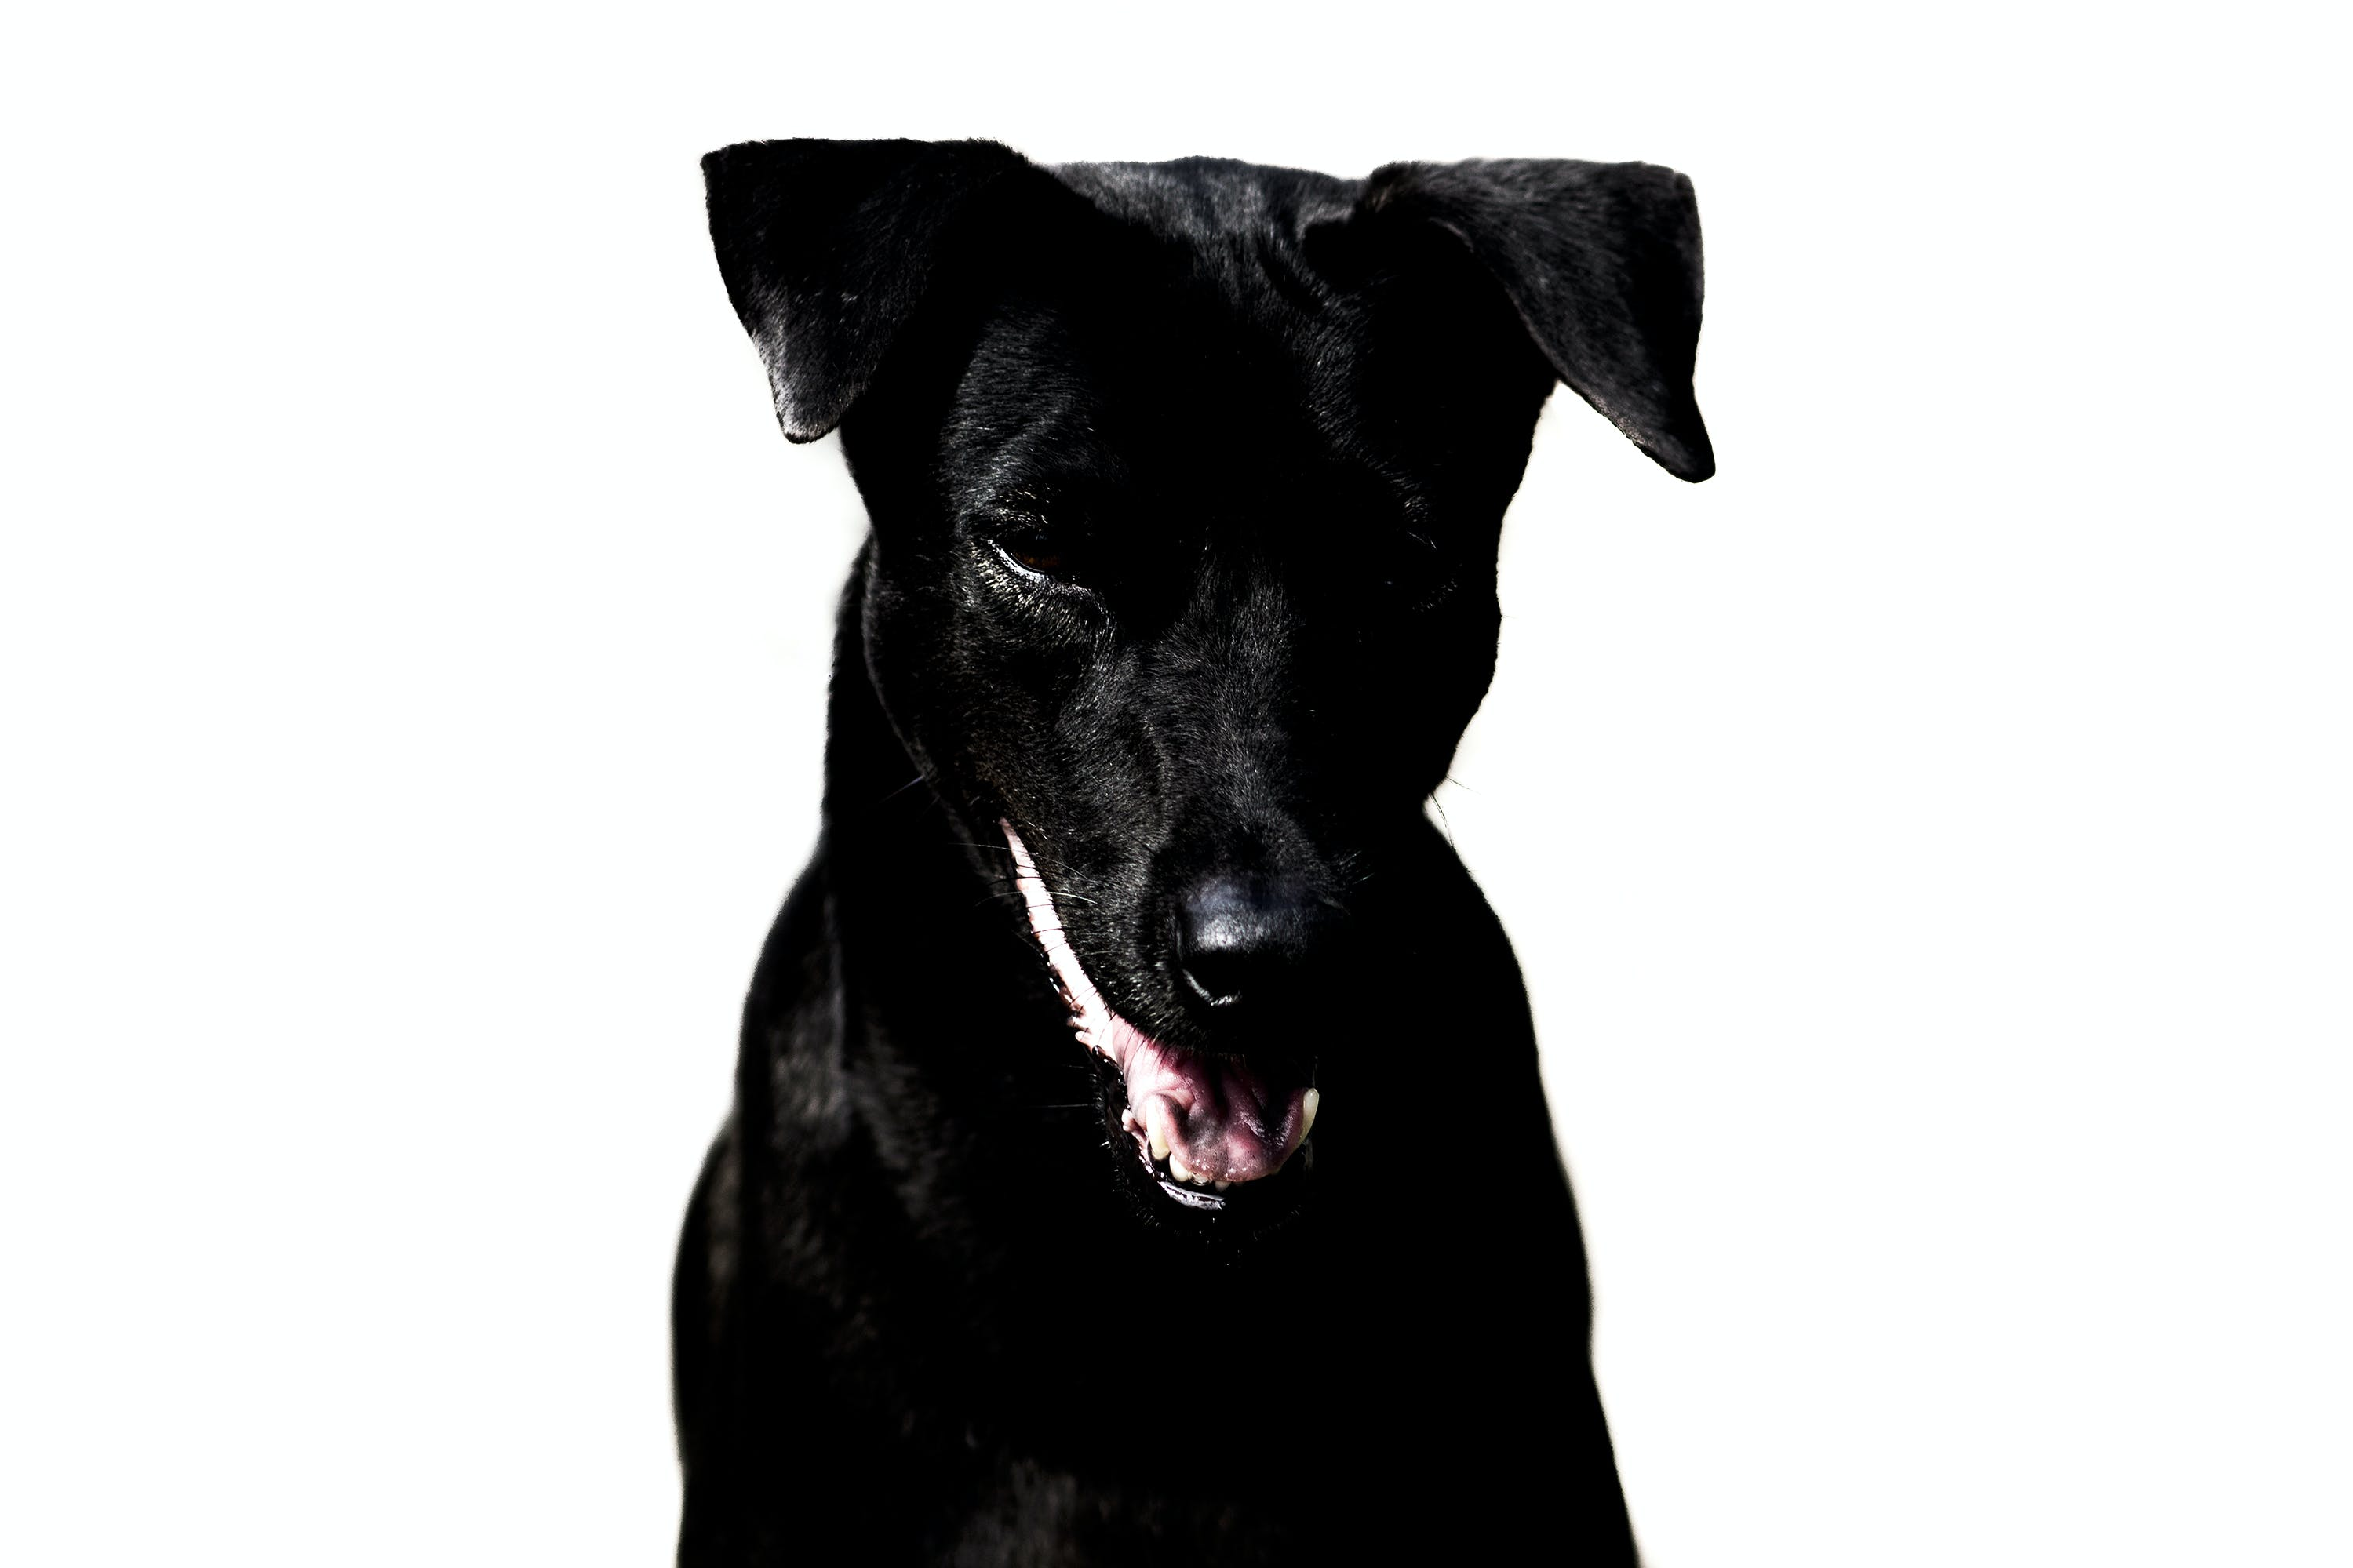 Free stock photo of dog, black, smile, front